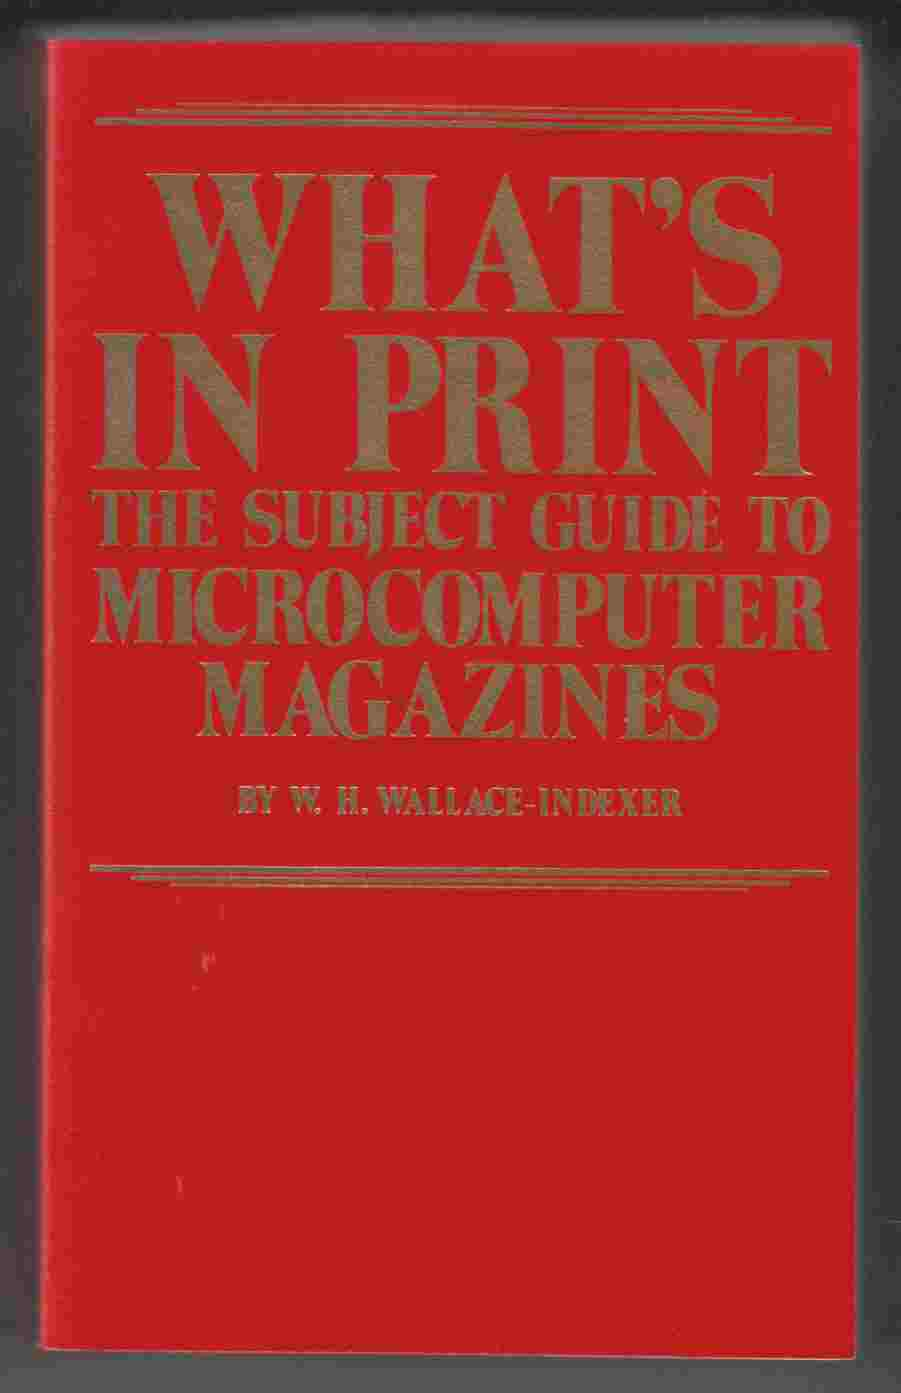 Image for What's in Print The Subject Guide to Microcomputer Magazines